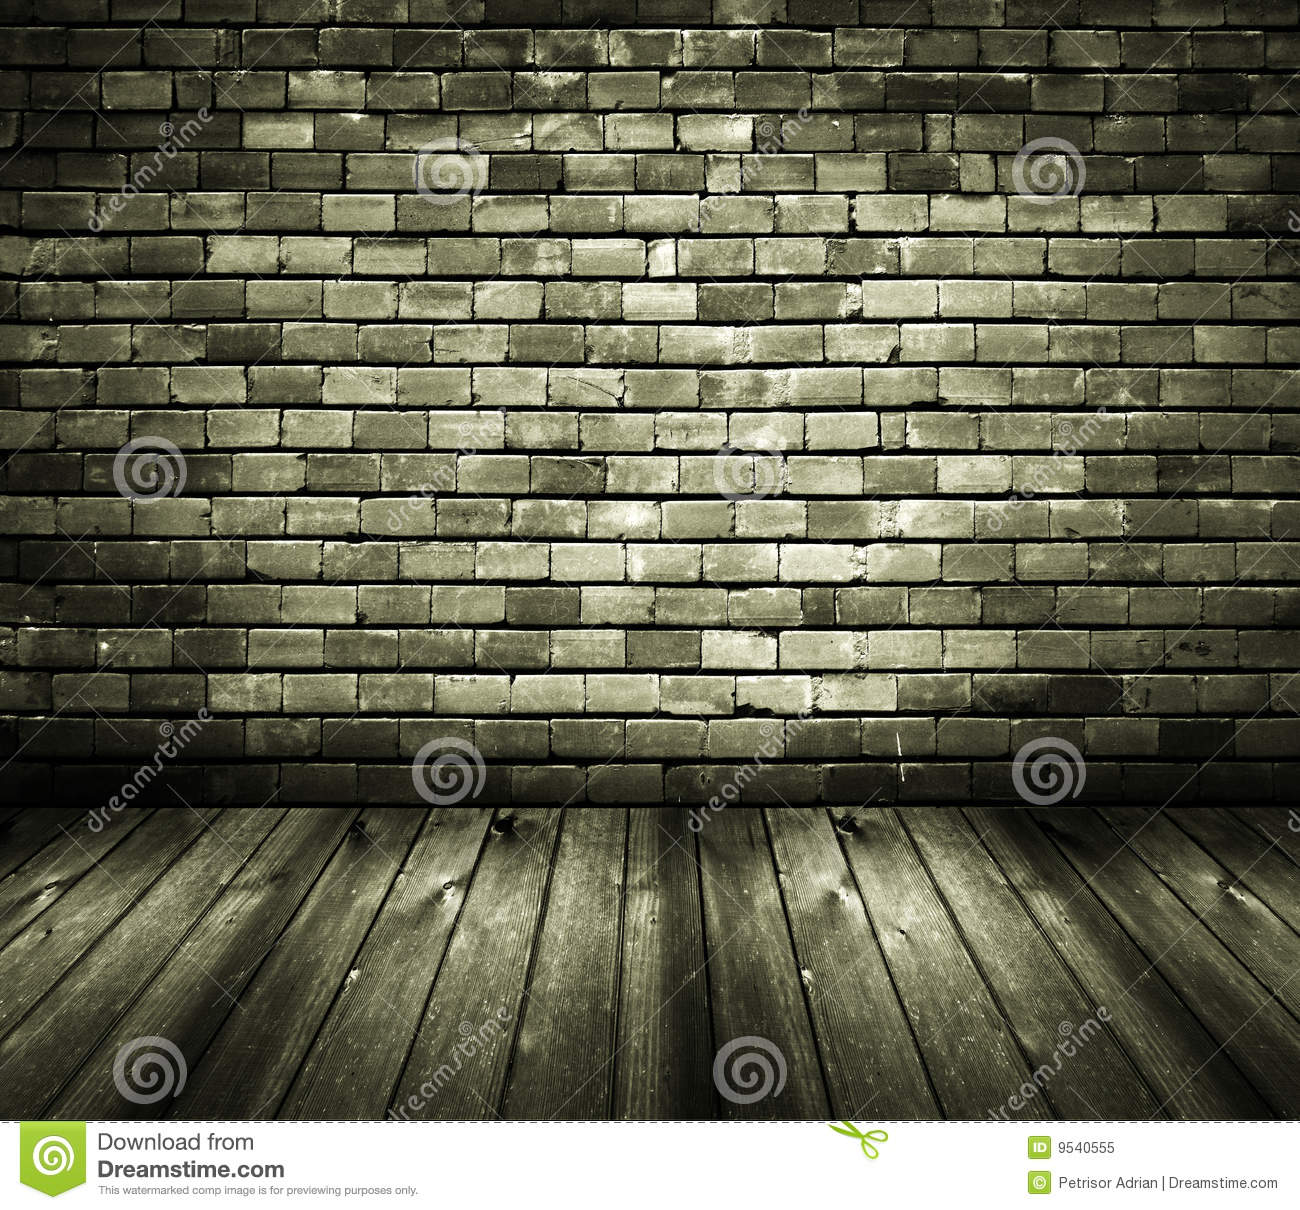 Rustic House Interior Brick Wall Wooden Floor Royalty Free Stock Photo